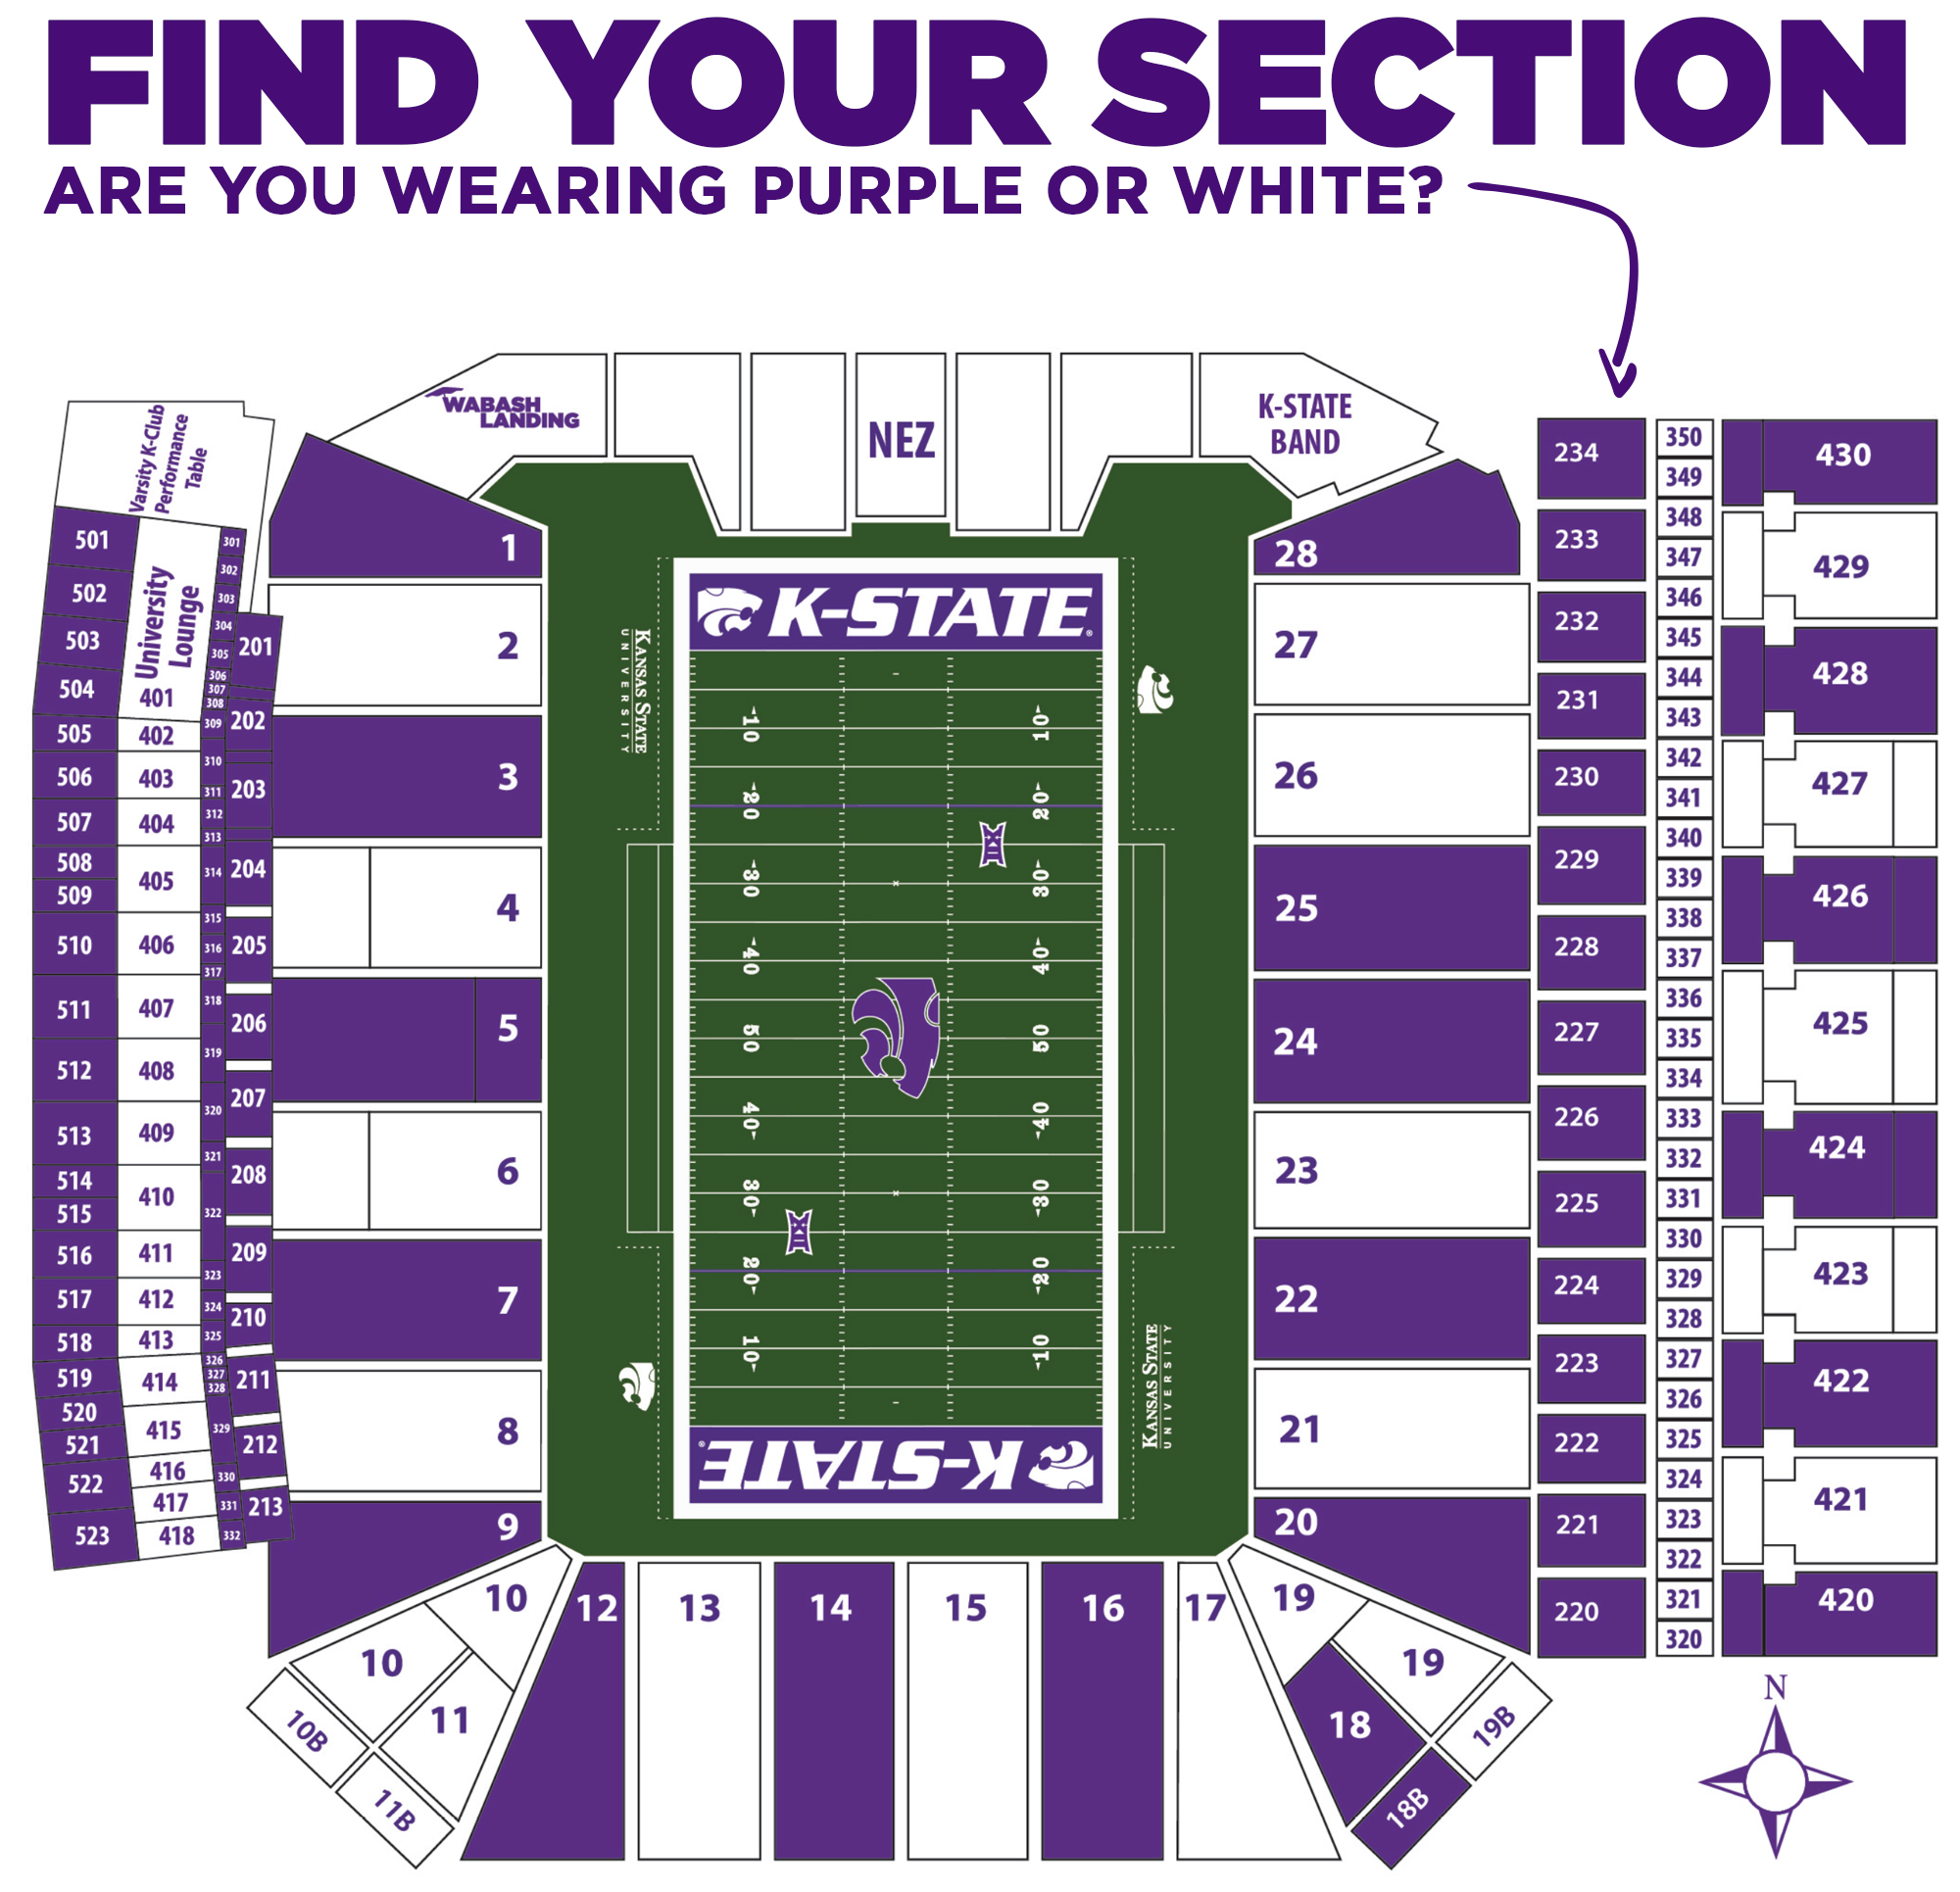 Football Stripe Out - Kansas State University Athletics on penn state map, u of a map, ohio state map, wichita state map, nc state map, sf state map, kennesaw state campus map, samarkand russia map, kstate campus map, san diego state university map, sporting kc map, farmingdale state college map, cleveland convention center map, carnegie mellon map, boise state map, a&m map, u of i map, washington university map, ks state map,